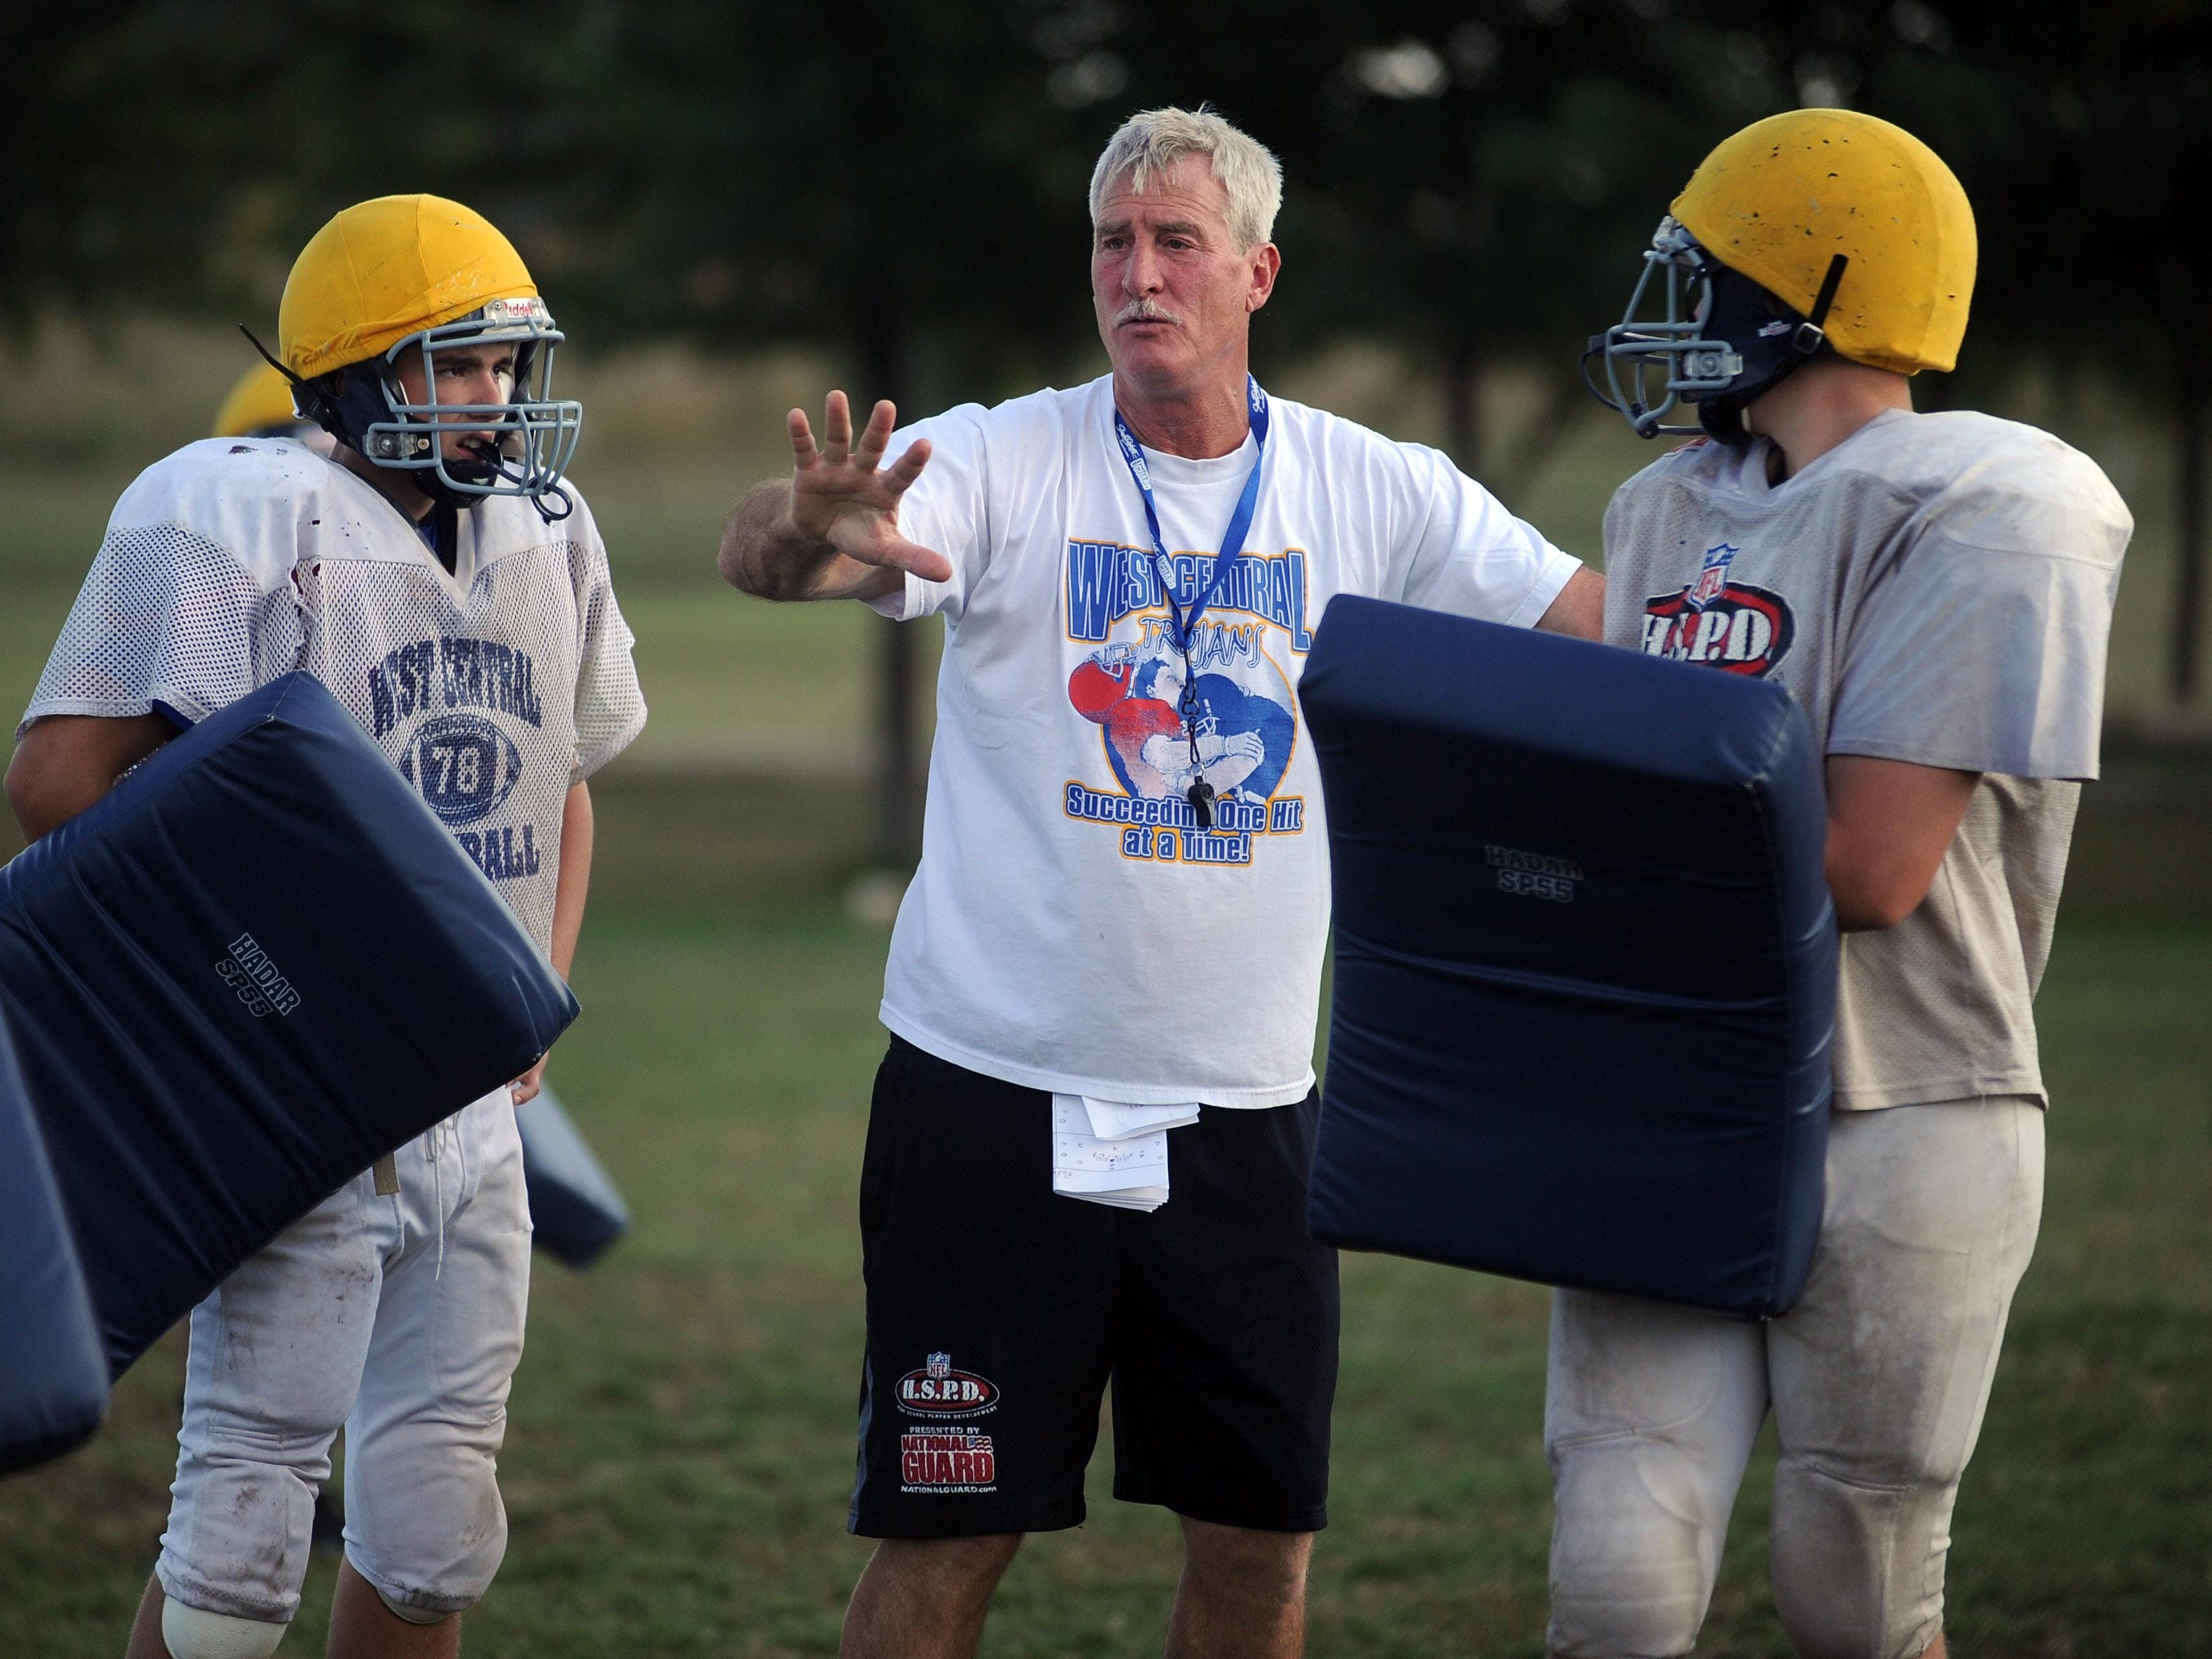 West Central coach Kent Mueller instructs his players during practice in 2013. Mueller's squad is preparing for a Friday night showdown with Canton, which won the 2013 Class 11B championship.